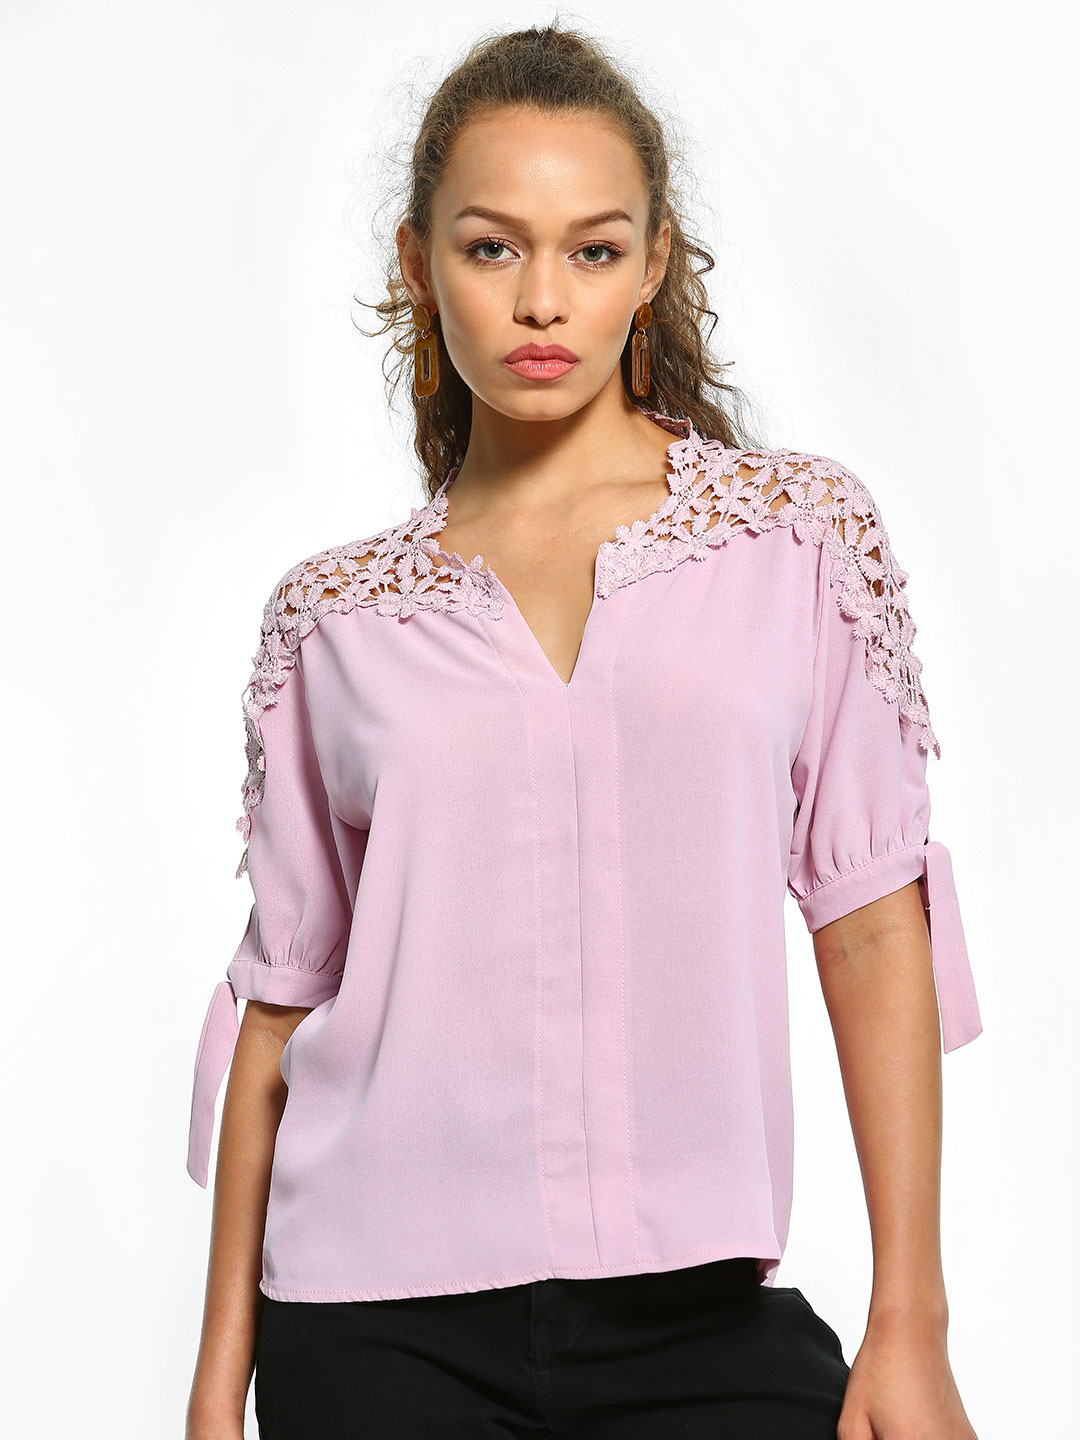 EmmaCloth Purple Crochet Lace Sleeve Blouse 1